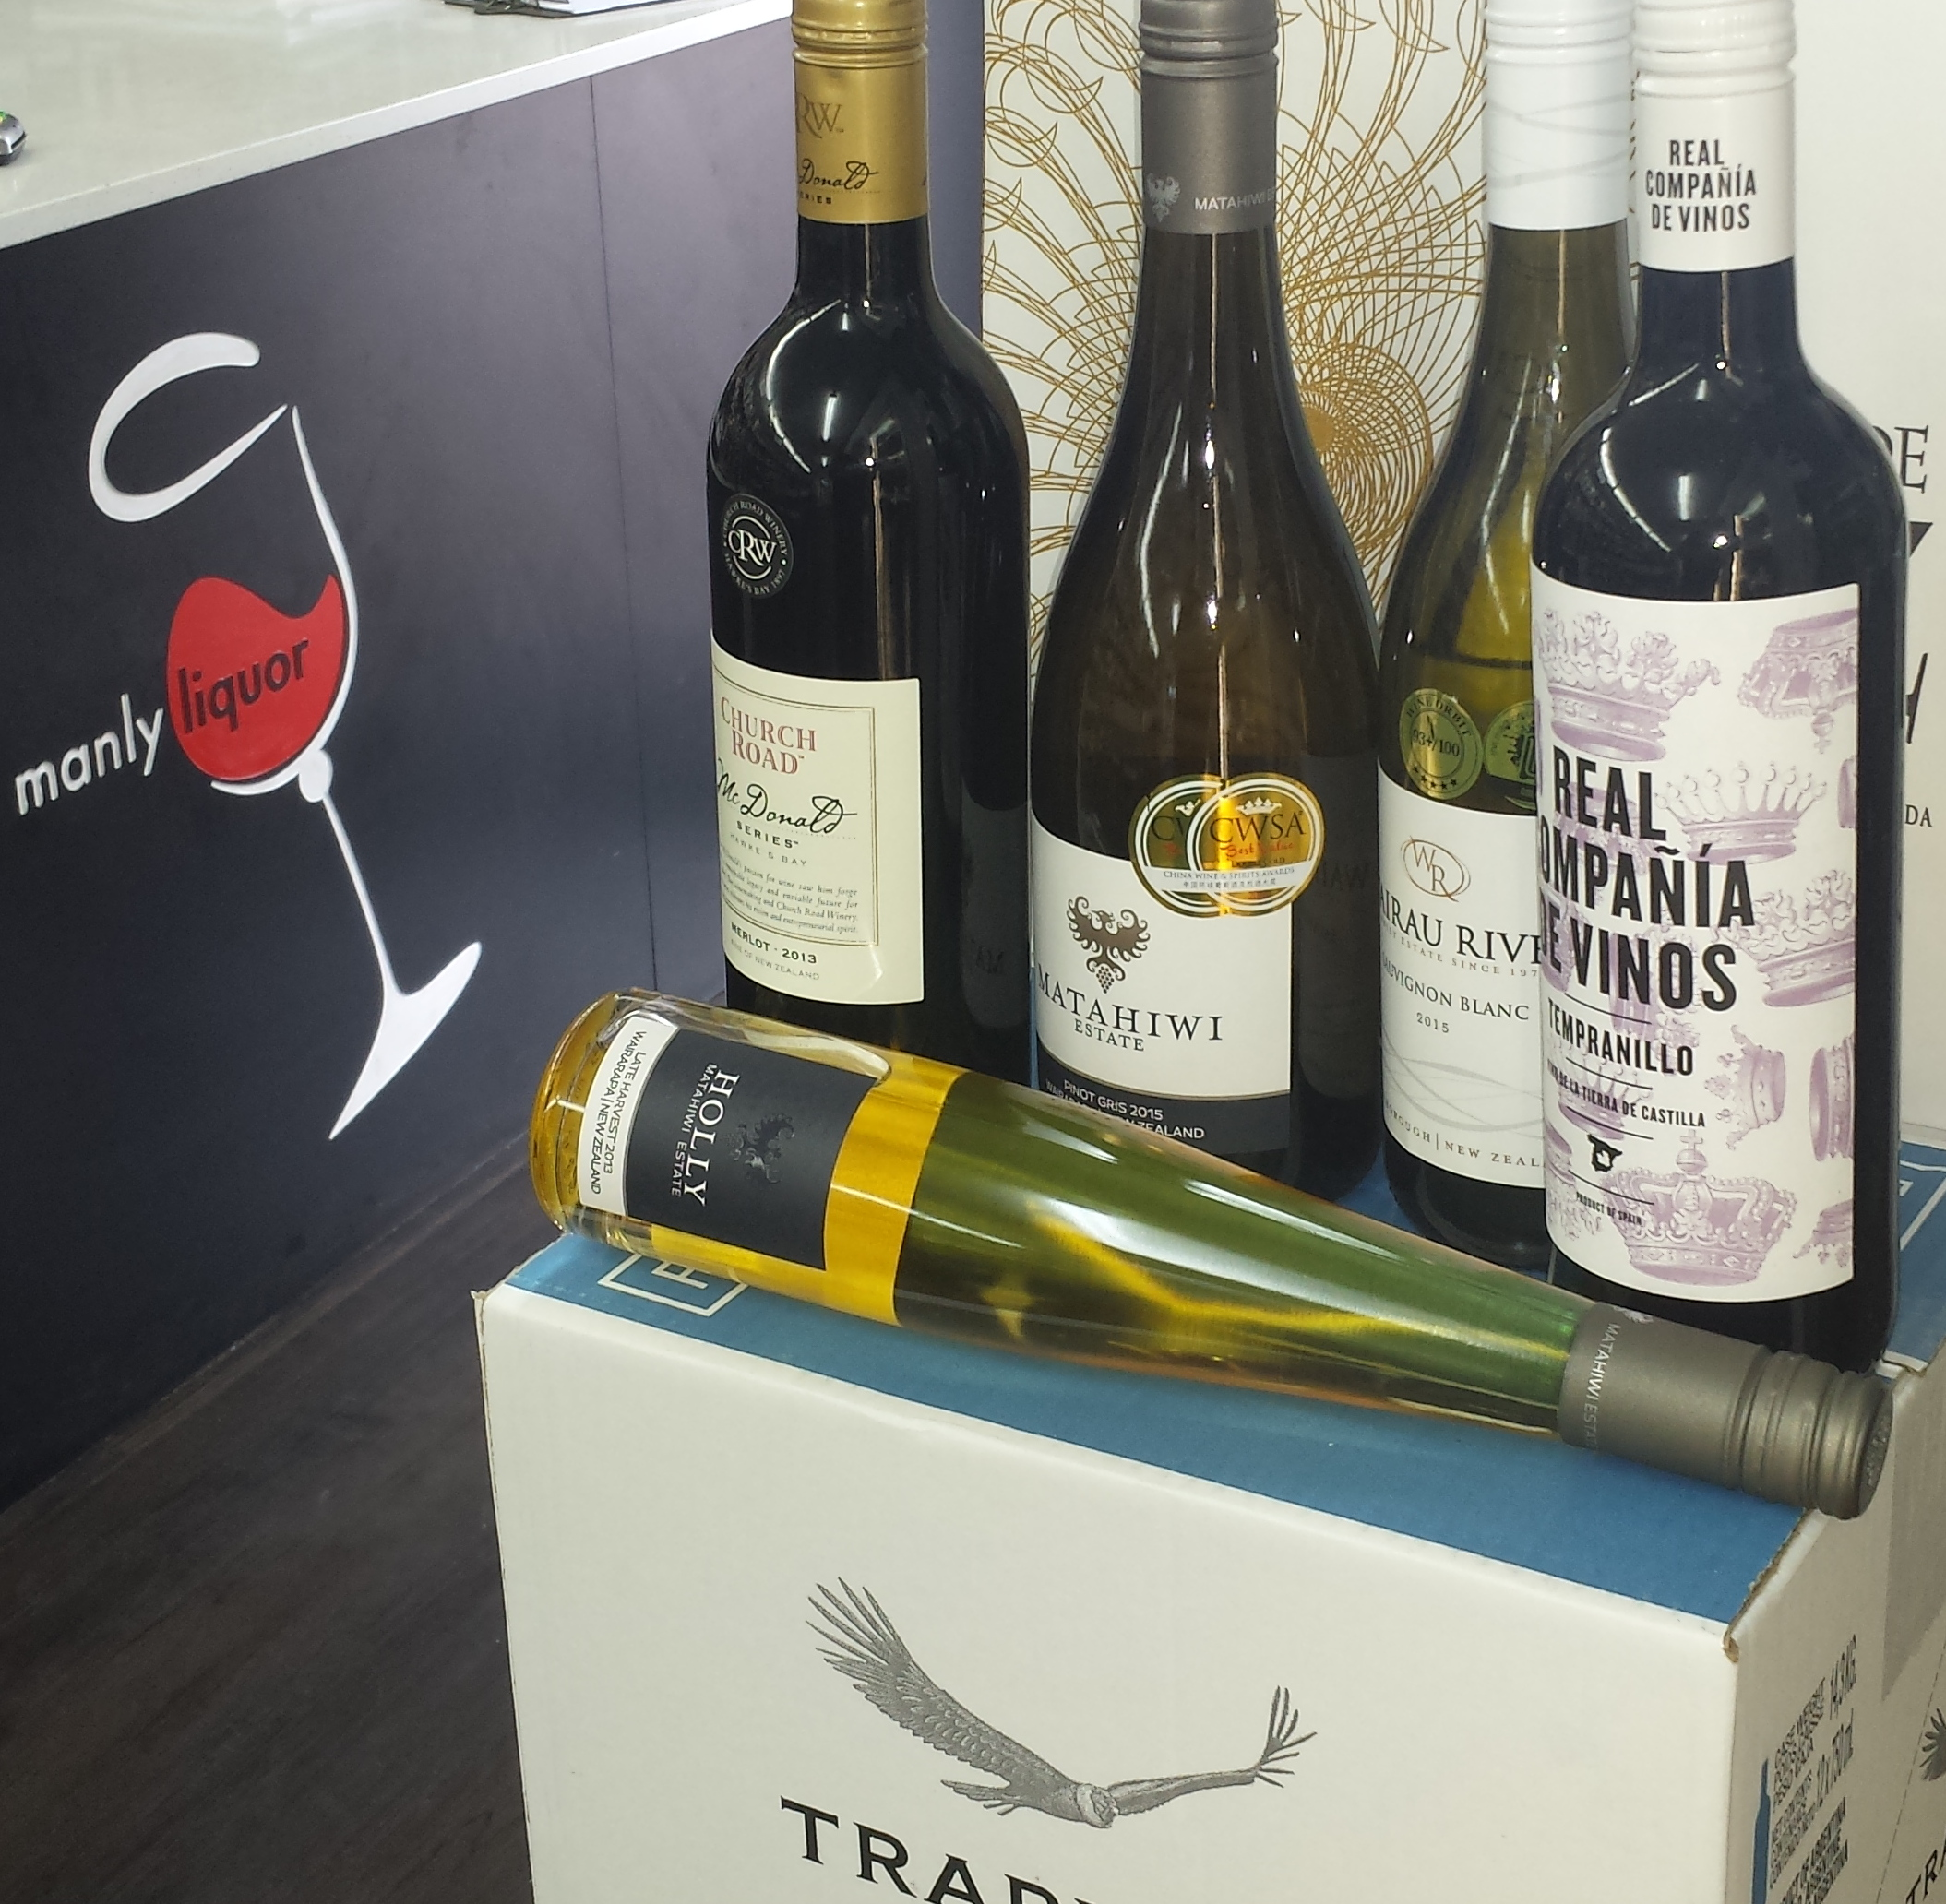 Four wines, a sticky, oh and look, a whole restock of Trapiche Malbec arrived back in store on Monday!